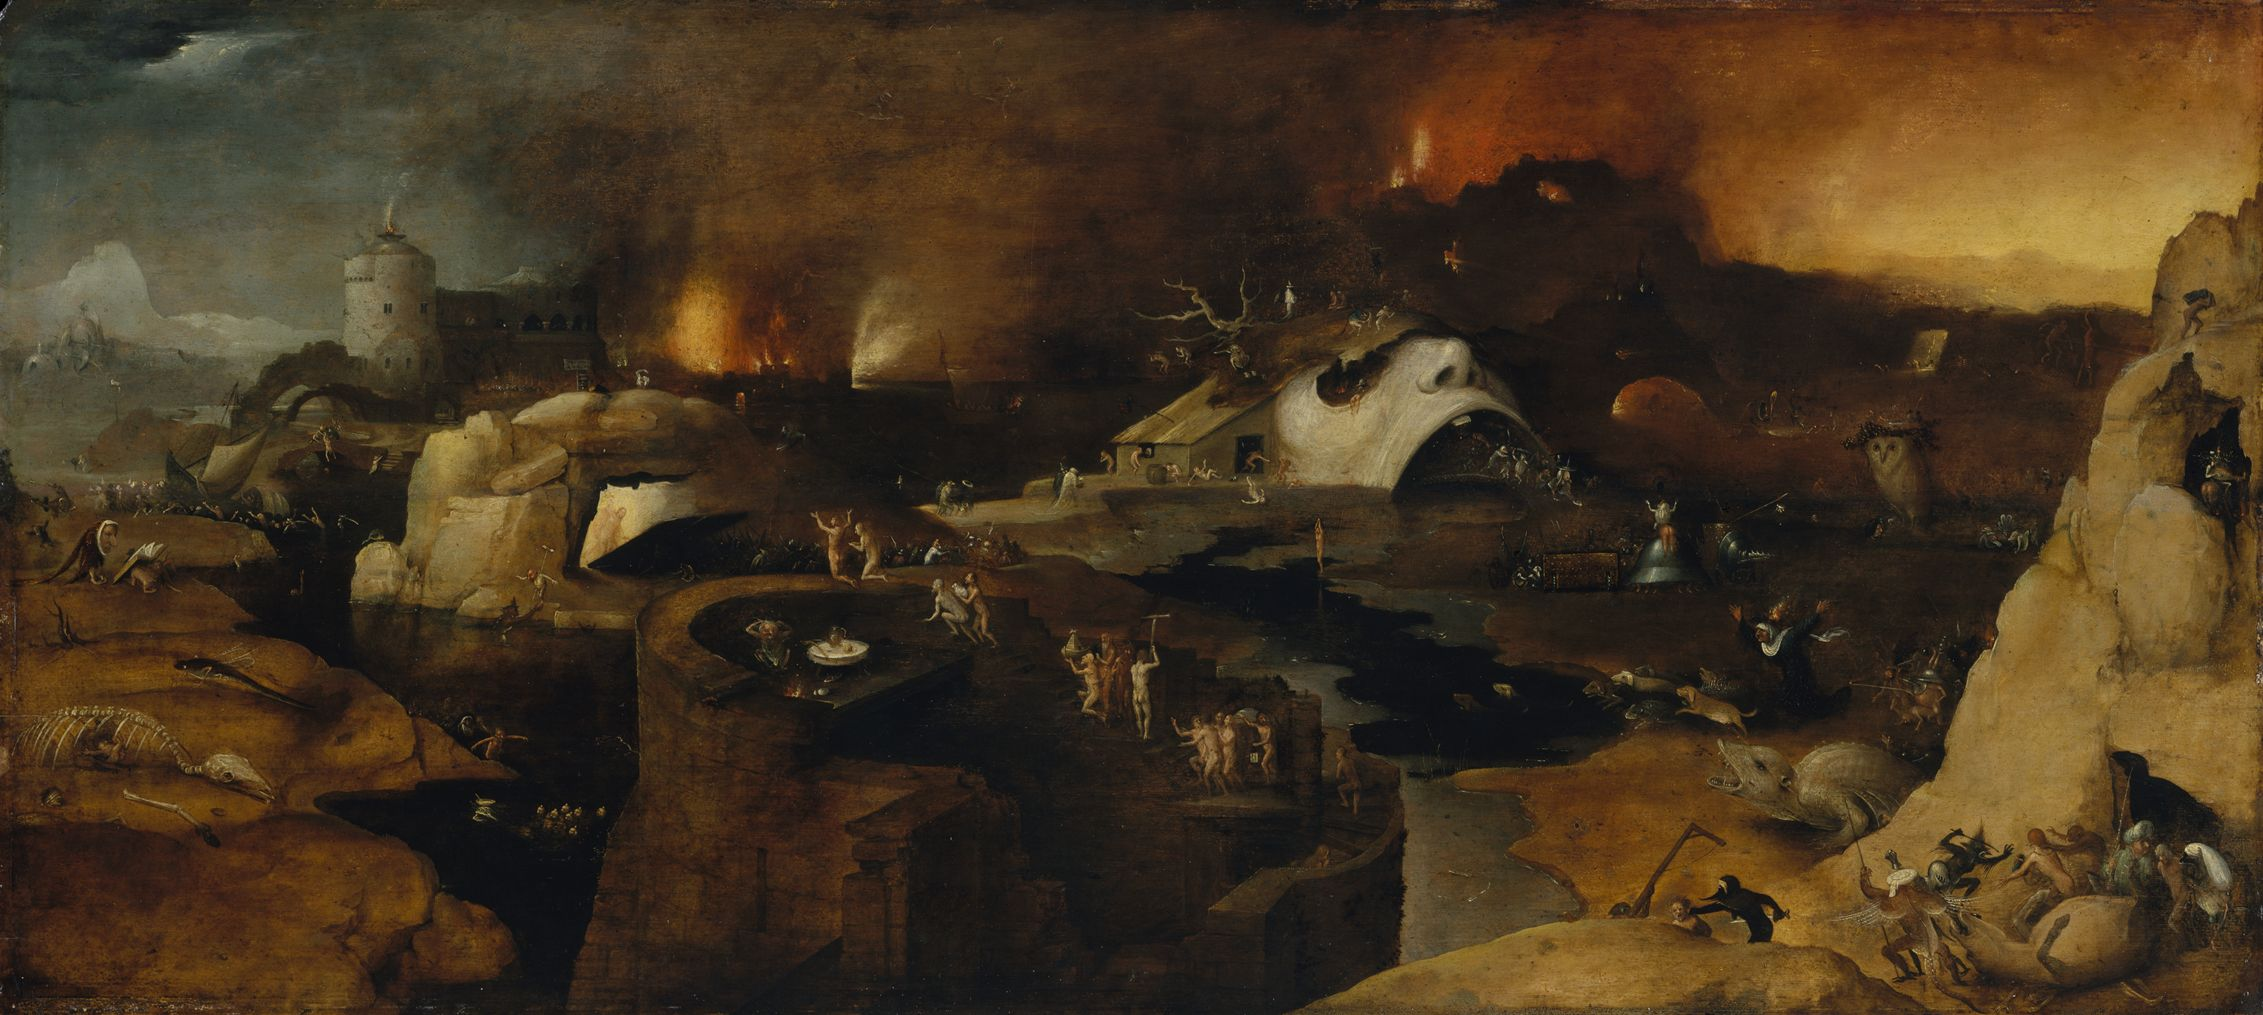 3_bosch_christs-descent-into-hell_mma